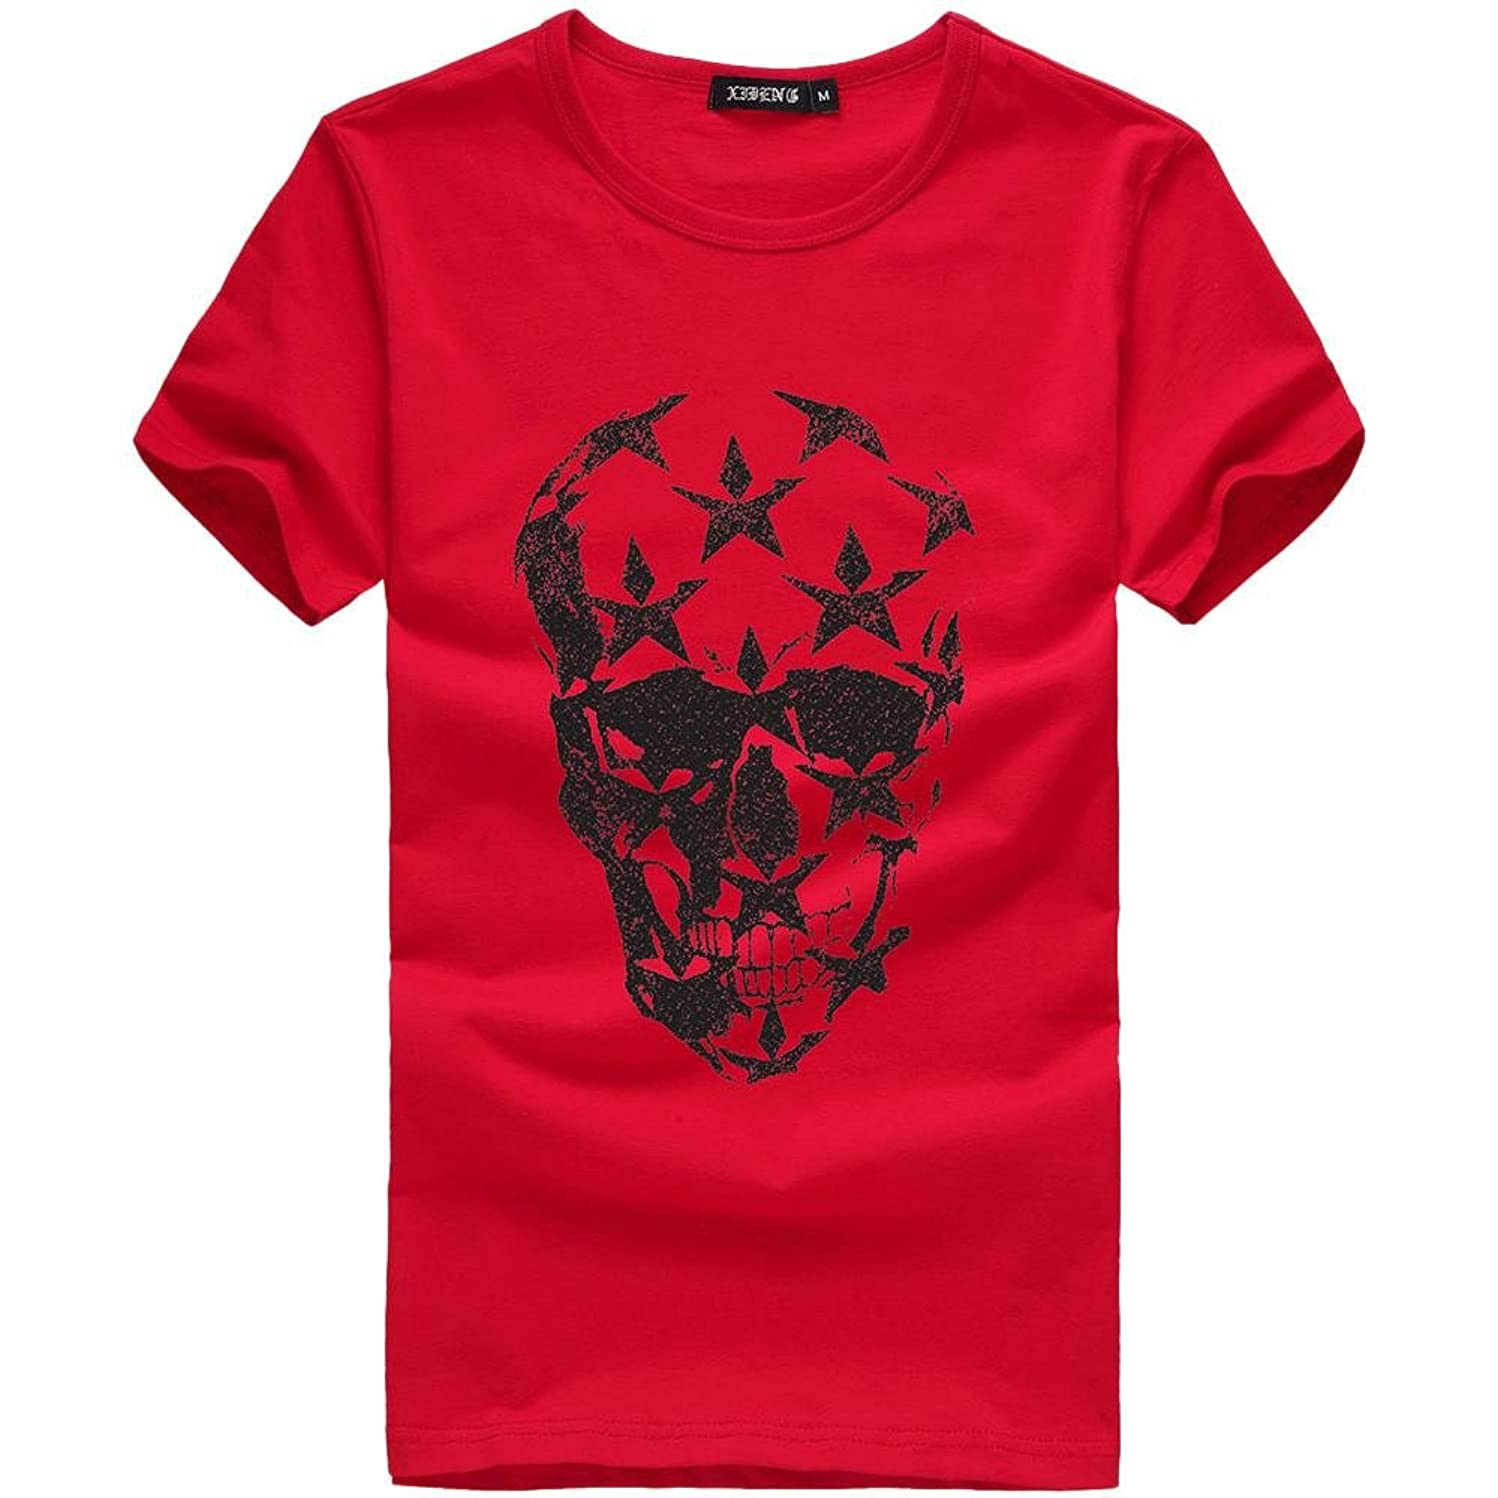 WM & MW Funny Graphic T-Shirt for Boy Men's Short Sleeve O-Neck Skull Print Tee Shirt Sport Casual Pullover Tops